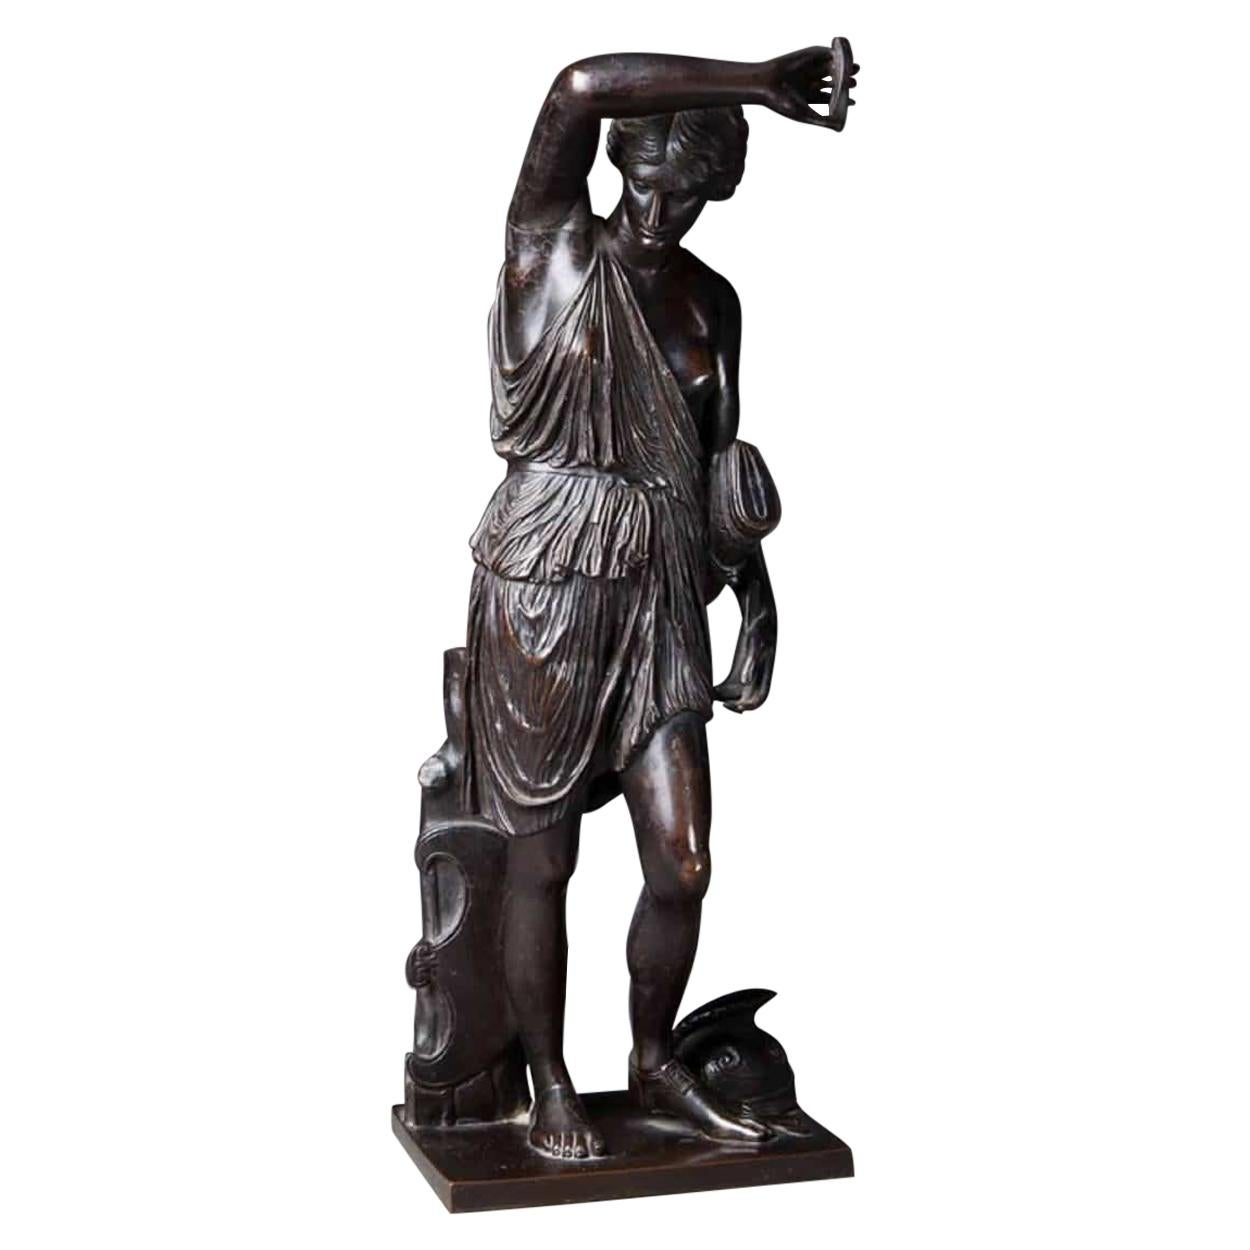 19th Century French Bronze Statue of the Goddess Diana by Barbedienne